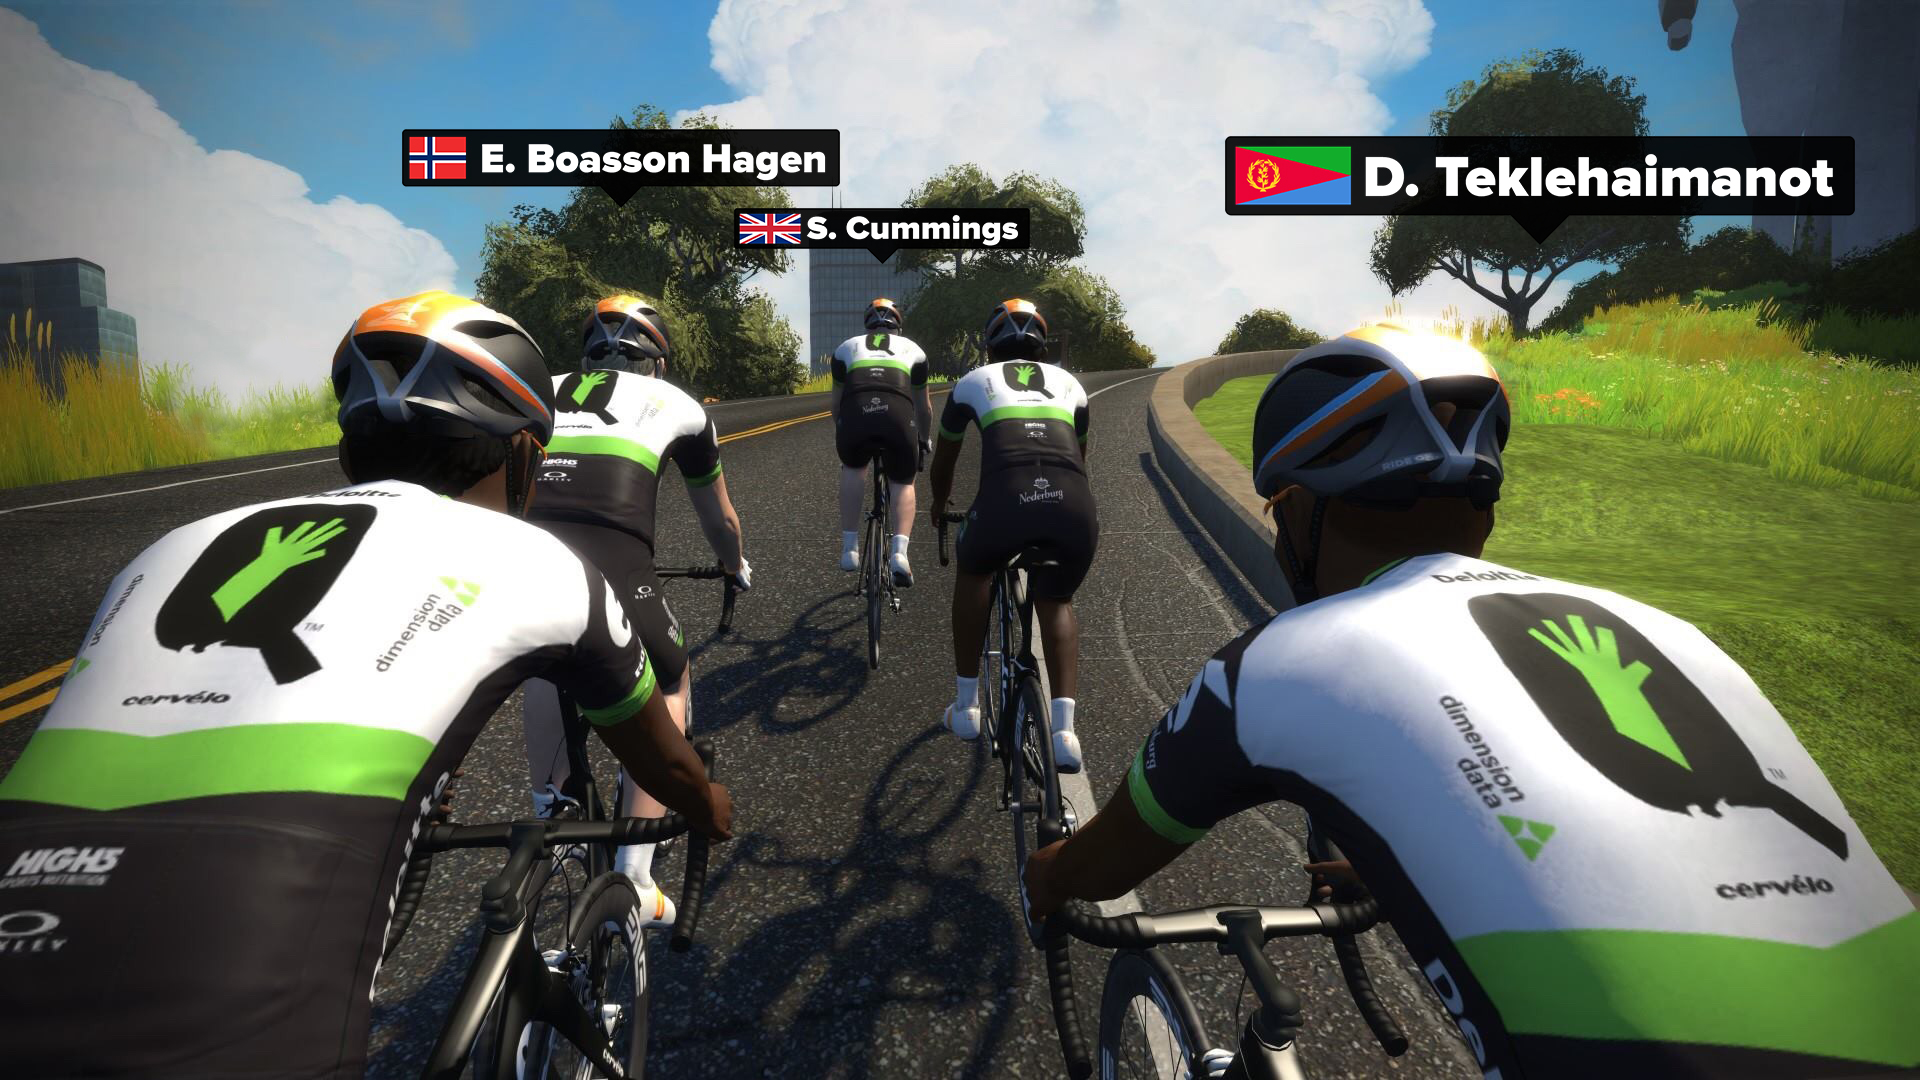 Zwift 1 0 25226 free download - Software reviews, downloads